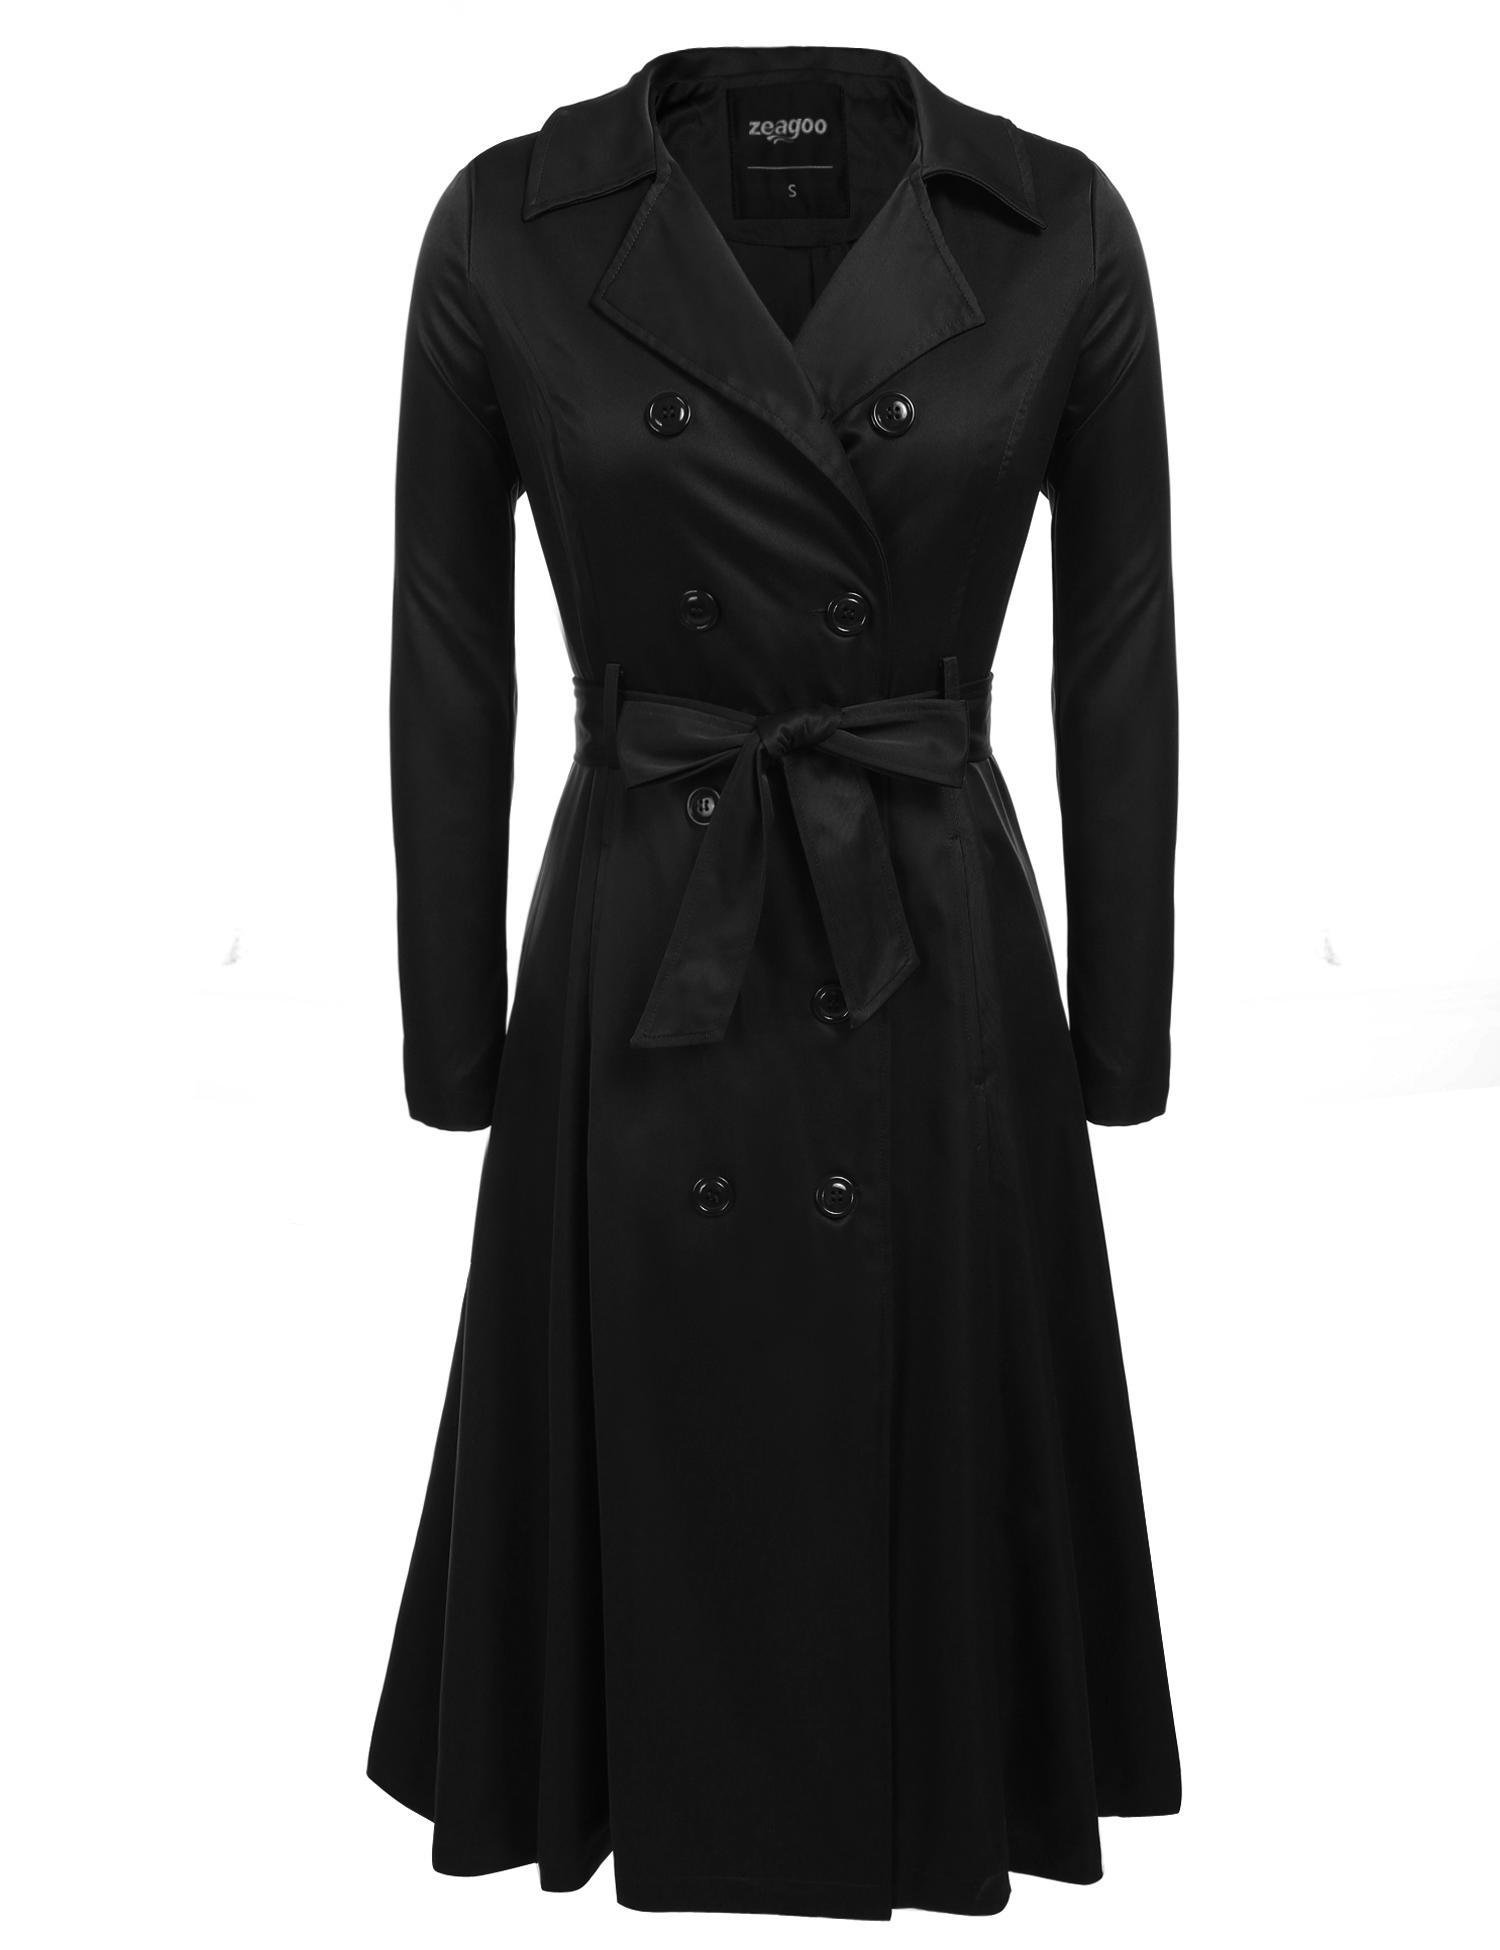 Zeagoo Women's British Style Elegant Jacket Double Breasted Slim Long Trench Coat,Black,X-Large